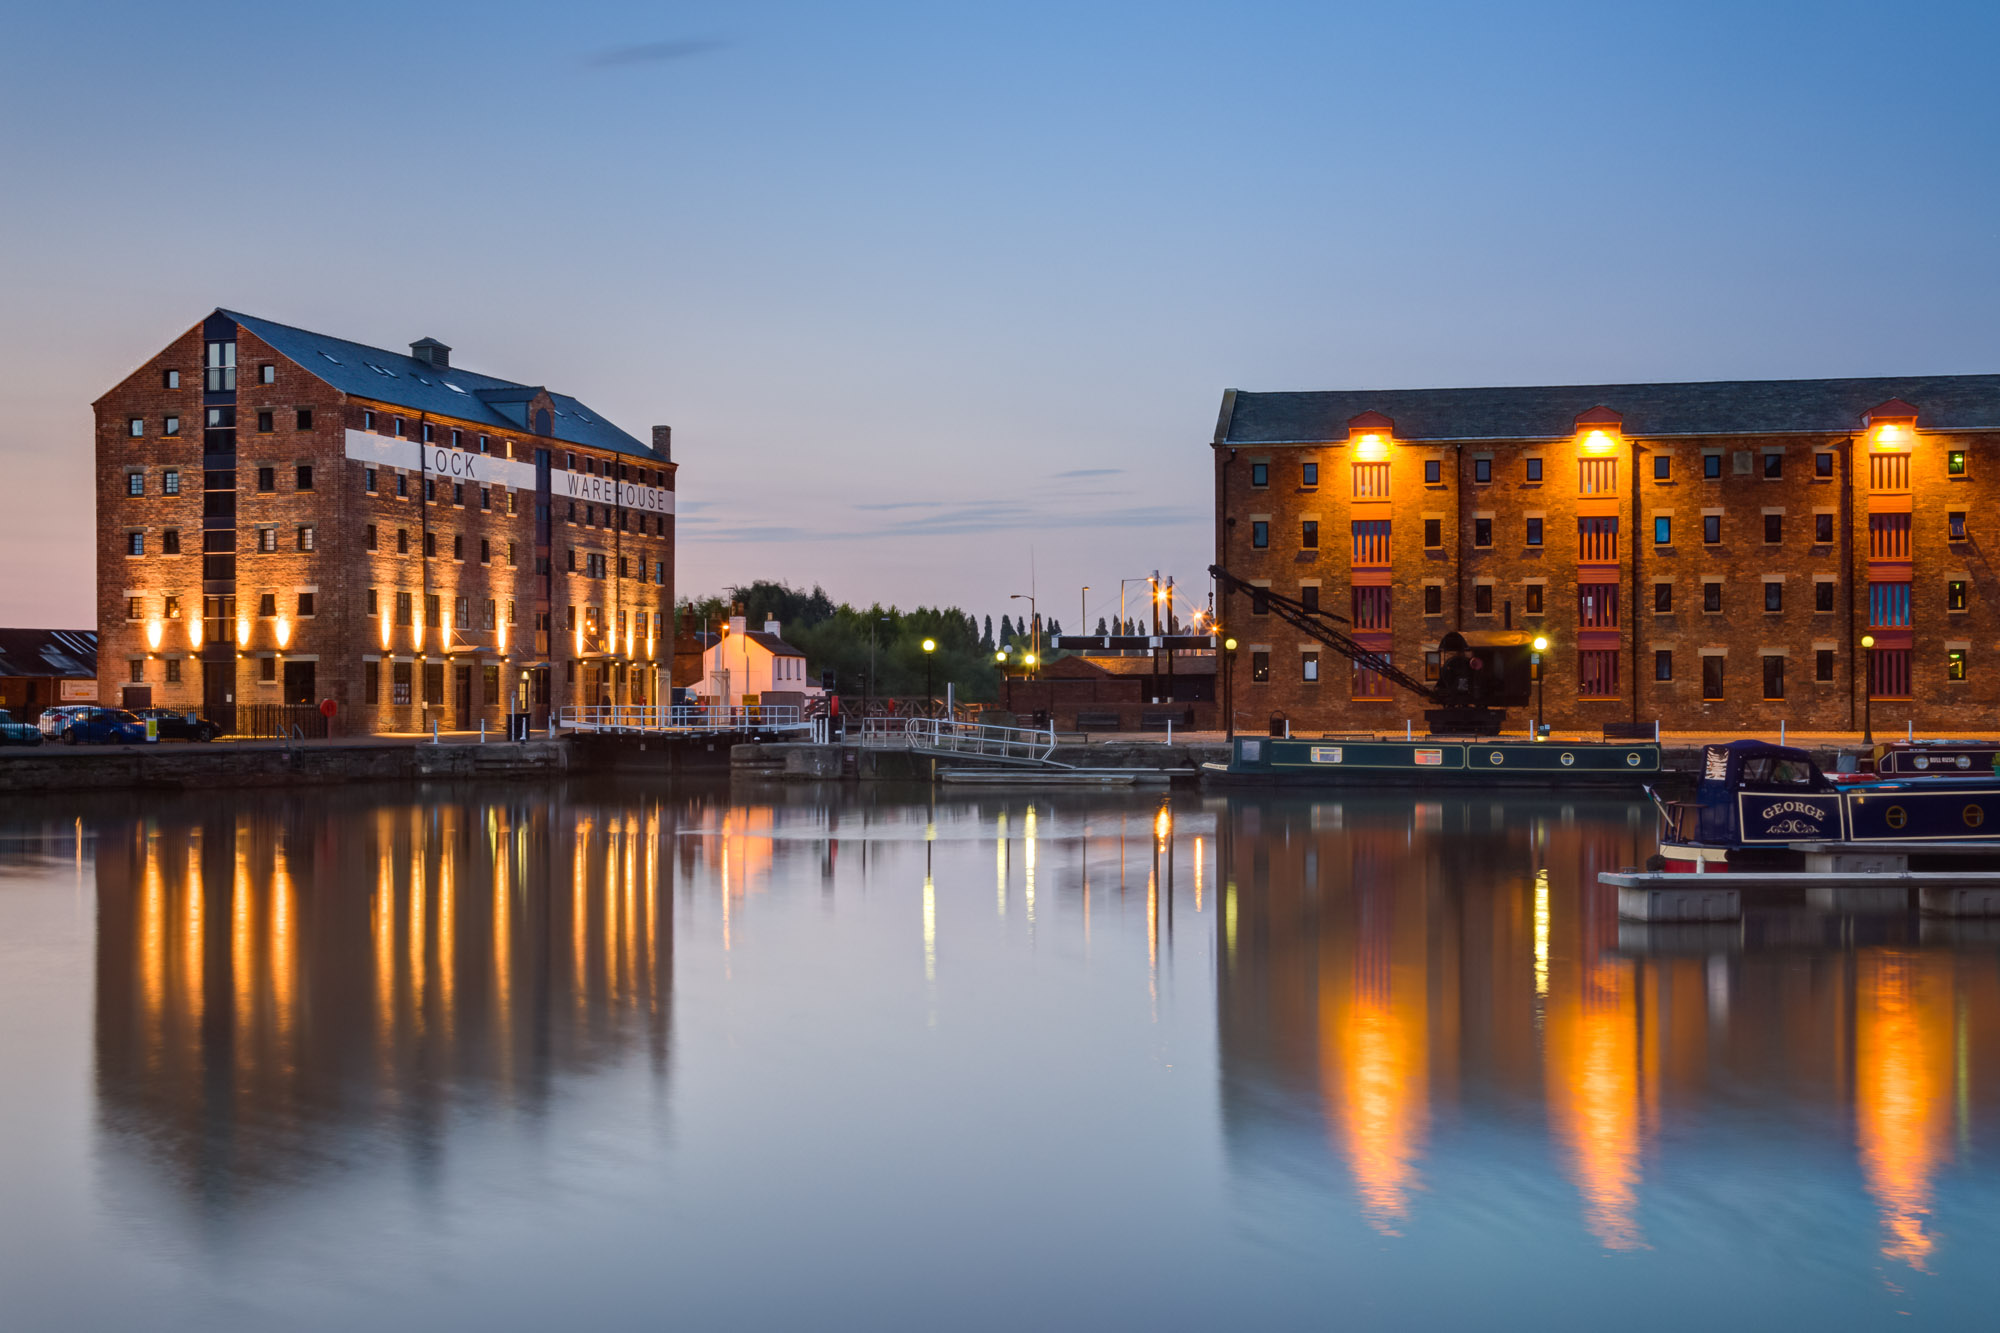 Lock Warehouse, Gloucester Docks a MELT Property residential and commercial development.